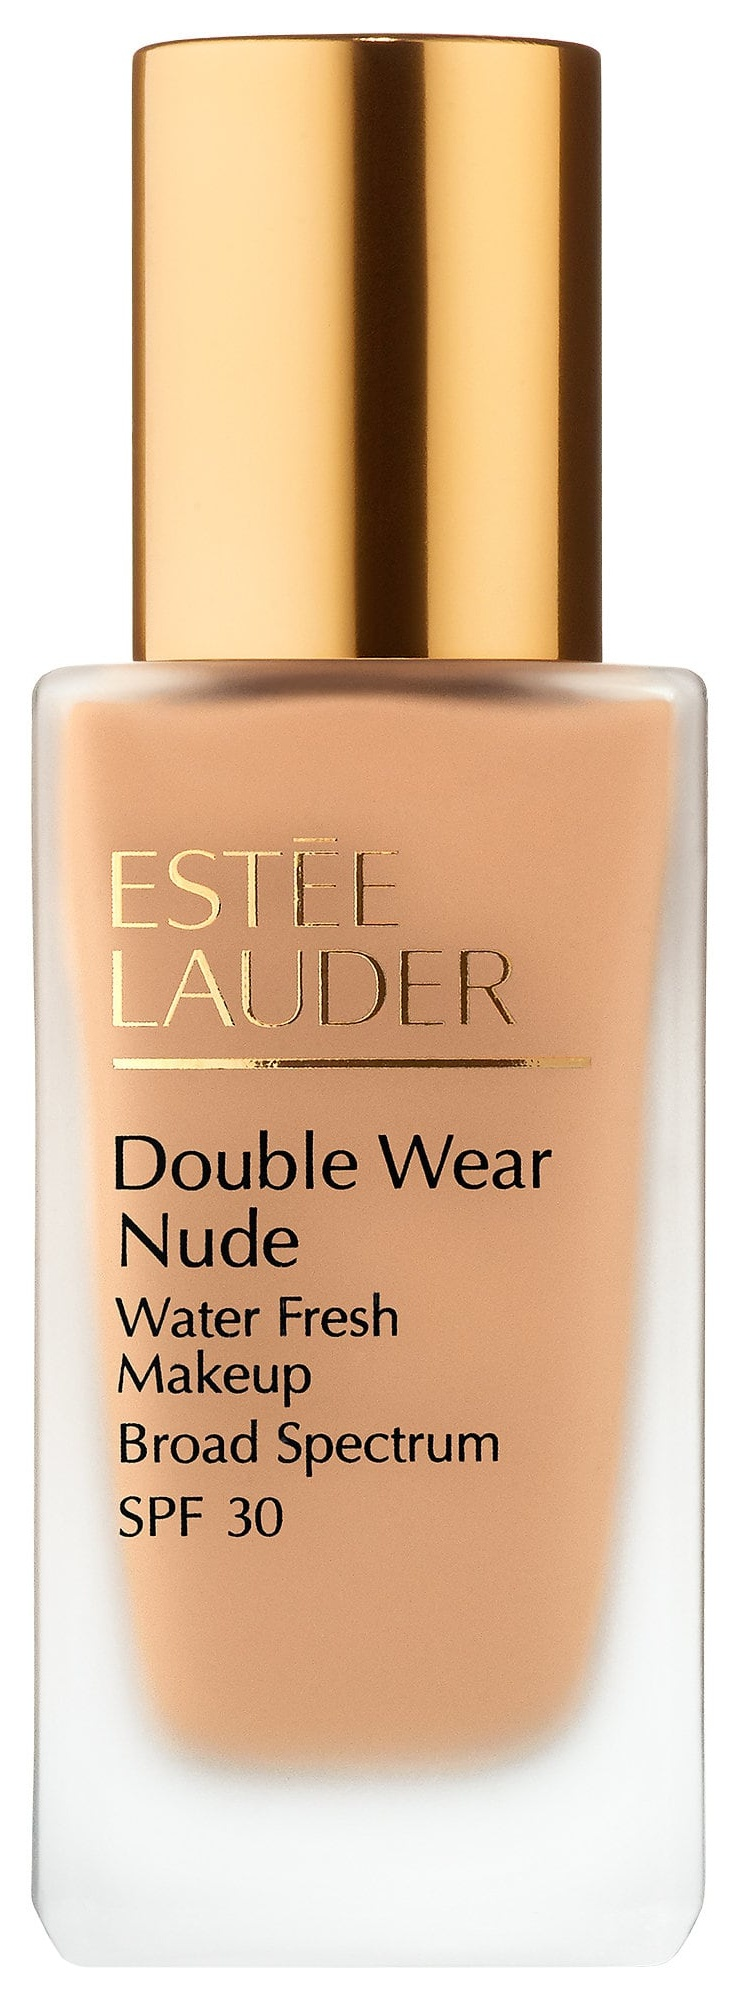 Estee Lauder Double Wear Nude Waterfresh Makeup Spf30